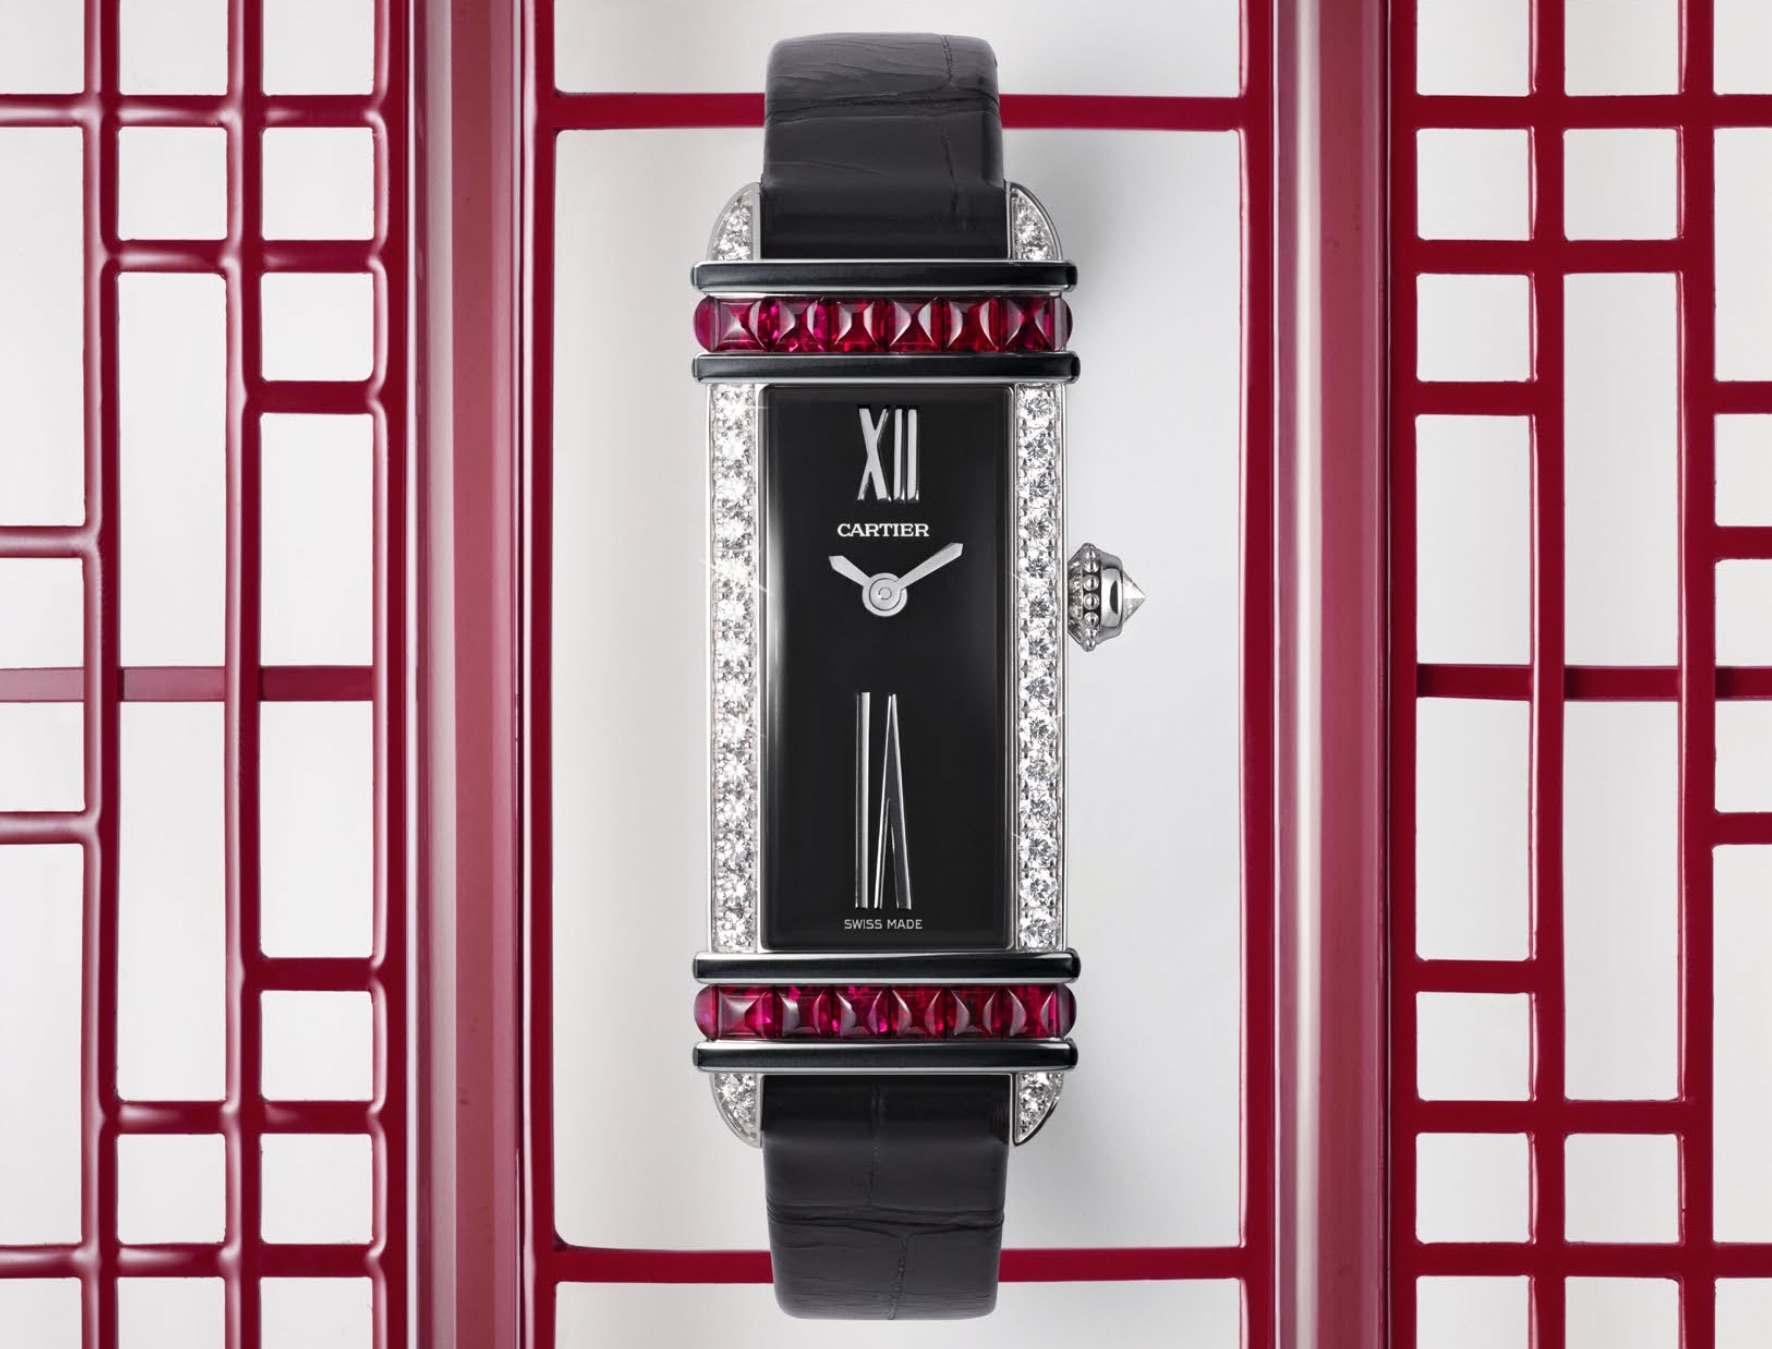 SIHH 2019 - Cartier Libre Jewelry collection - 3